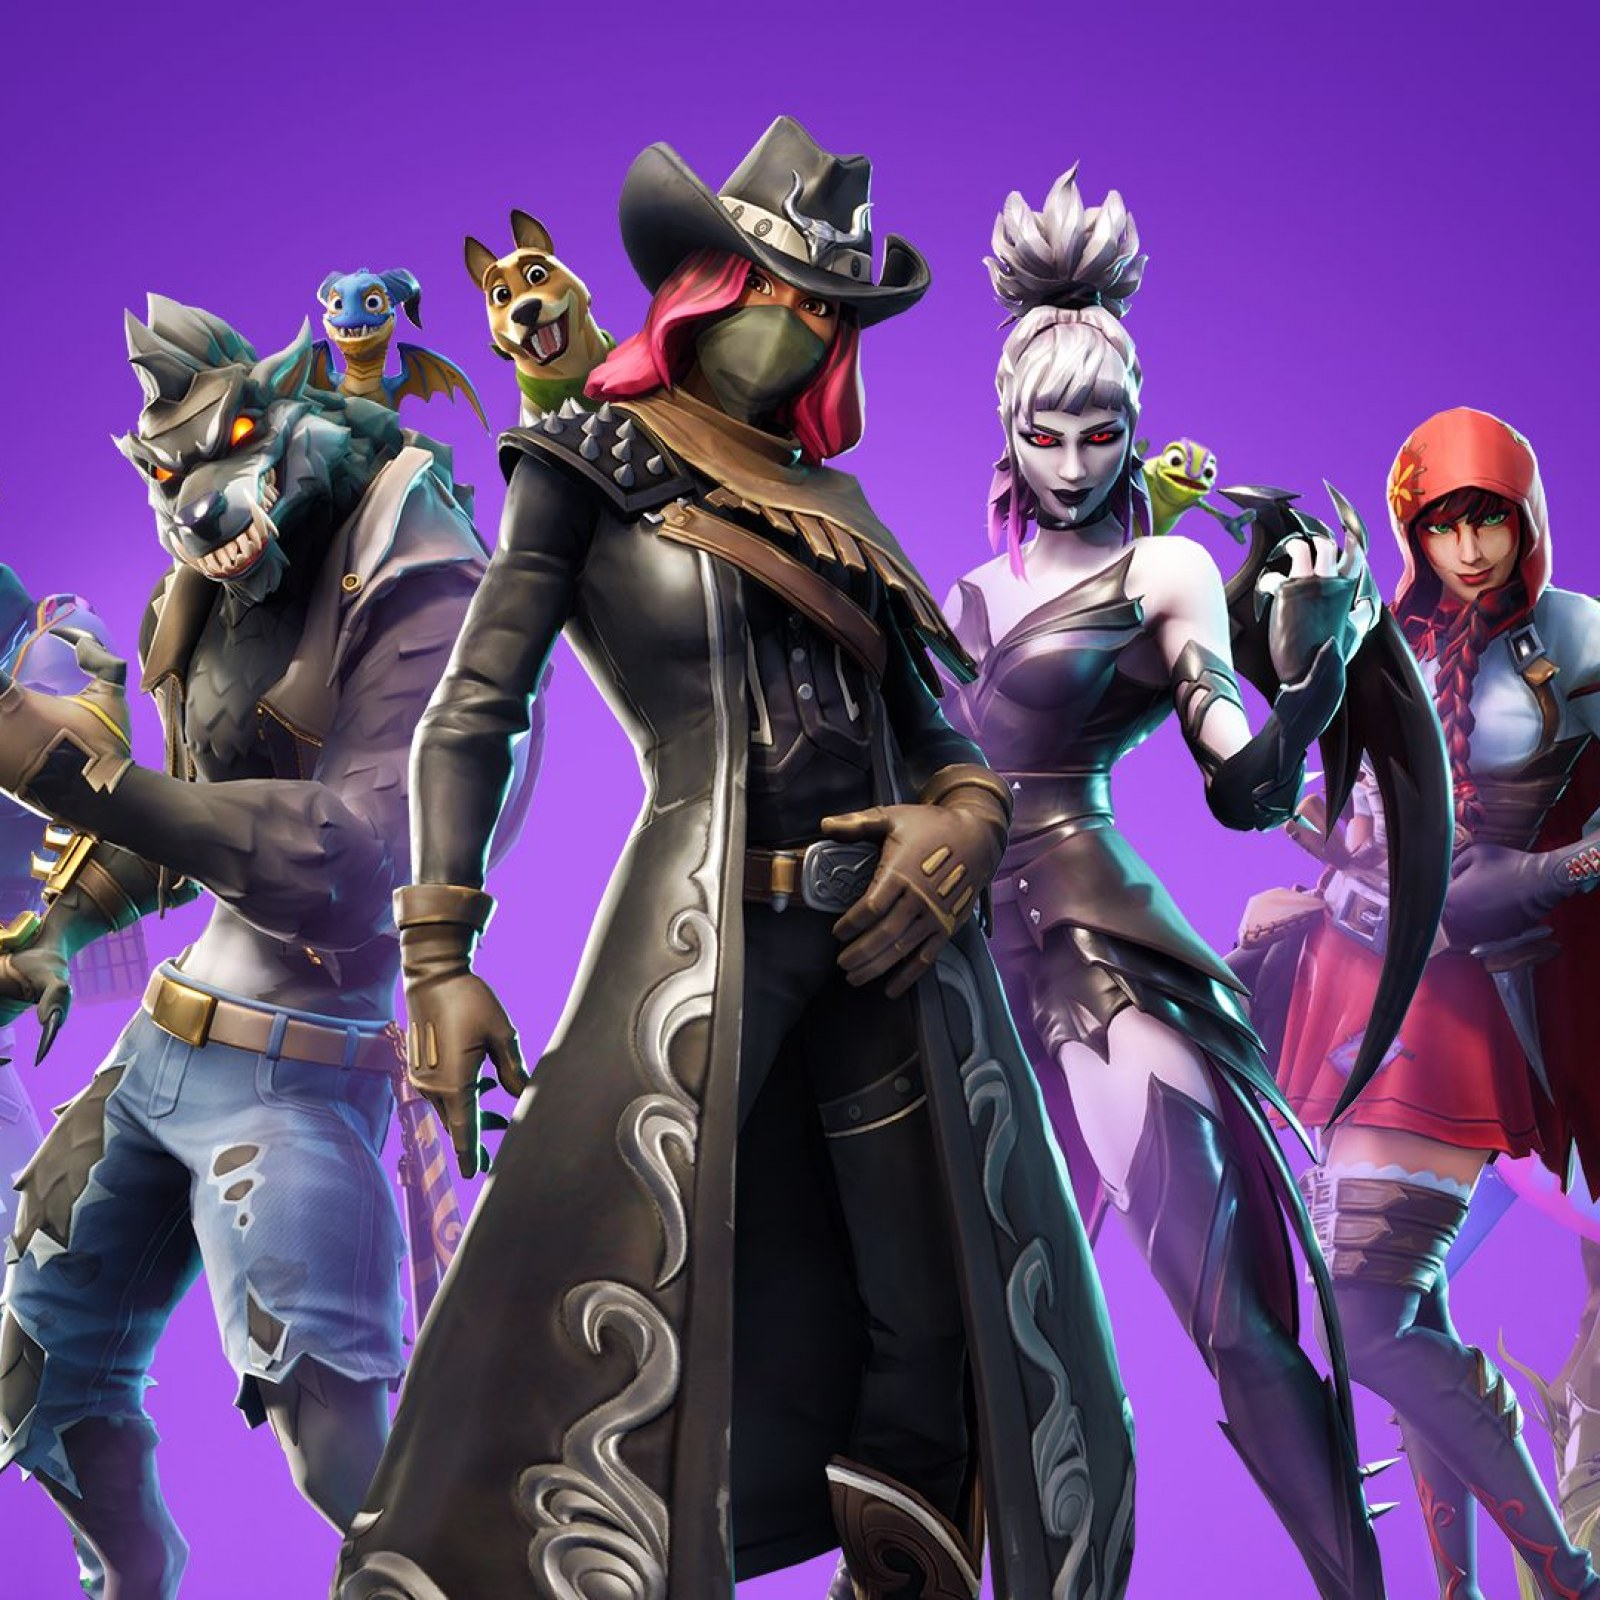 Fortnite' Update 6 01 1 (1 83) Fixes Crash Today - Patch Notes